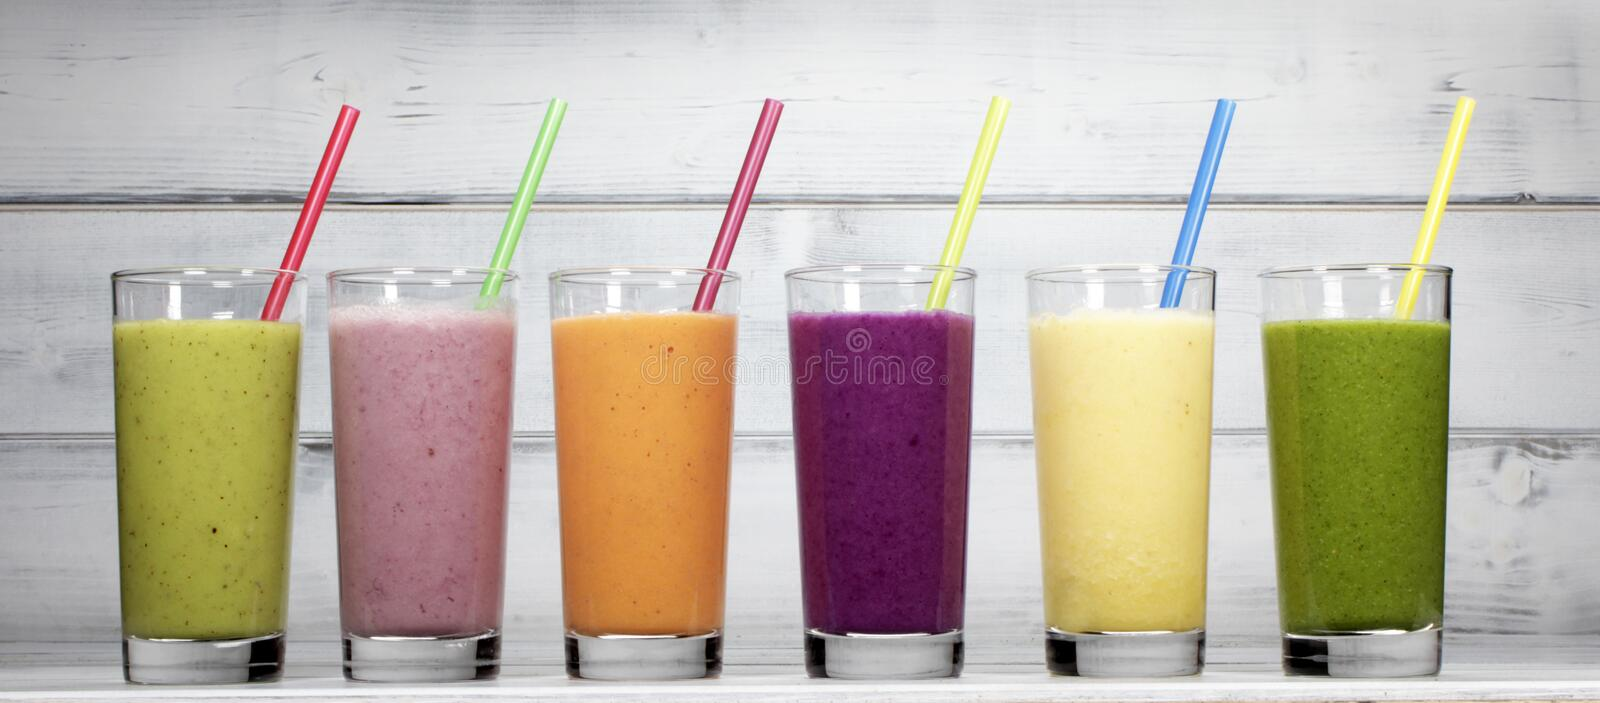 Smoothies. Different fresh fruit smoothies in glasses royalty free stock images